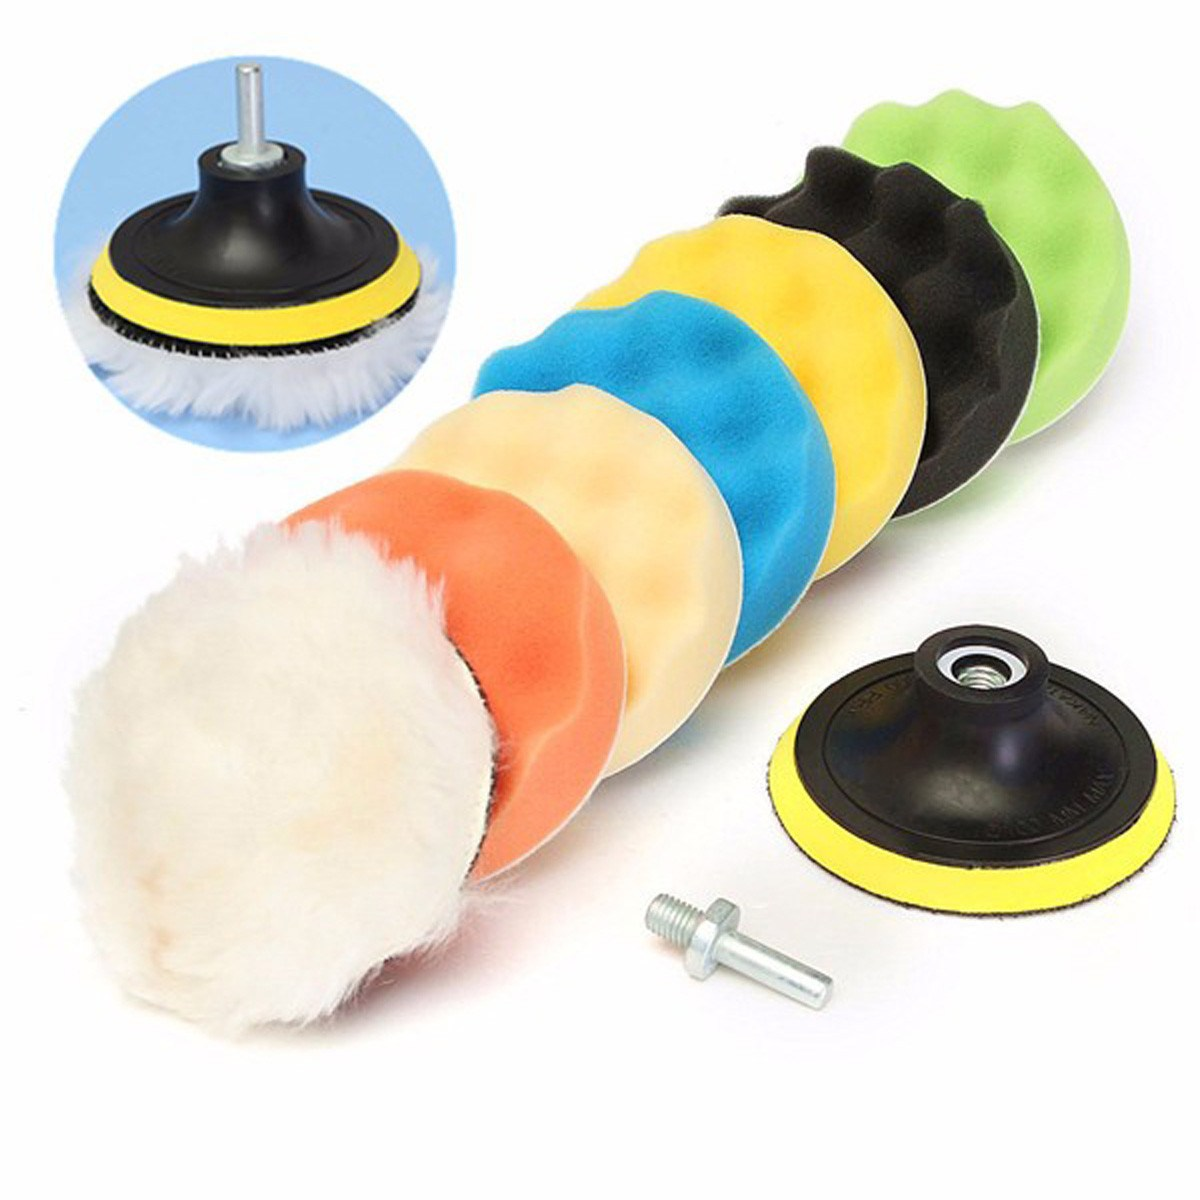 8Pcs 5 Inch Woolen Buffing Pad Auto Car Polishing Pad Kit Buffer + Drill Adapter For Car Polisher ,Electric Drill Pack spta 29pcs drill buffing buffer detail polishing polisher pad kit 5 8 11 m14 thread backing backer plate pad